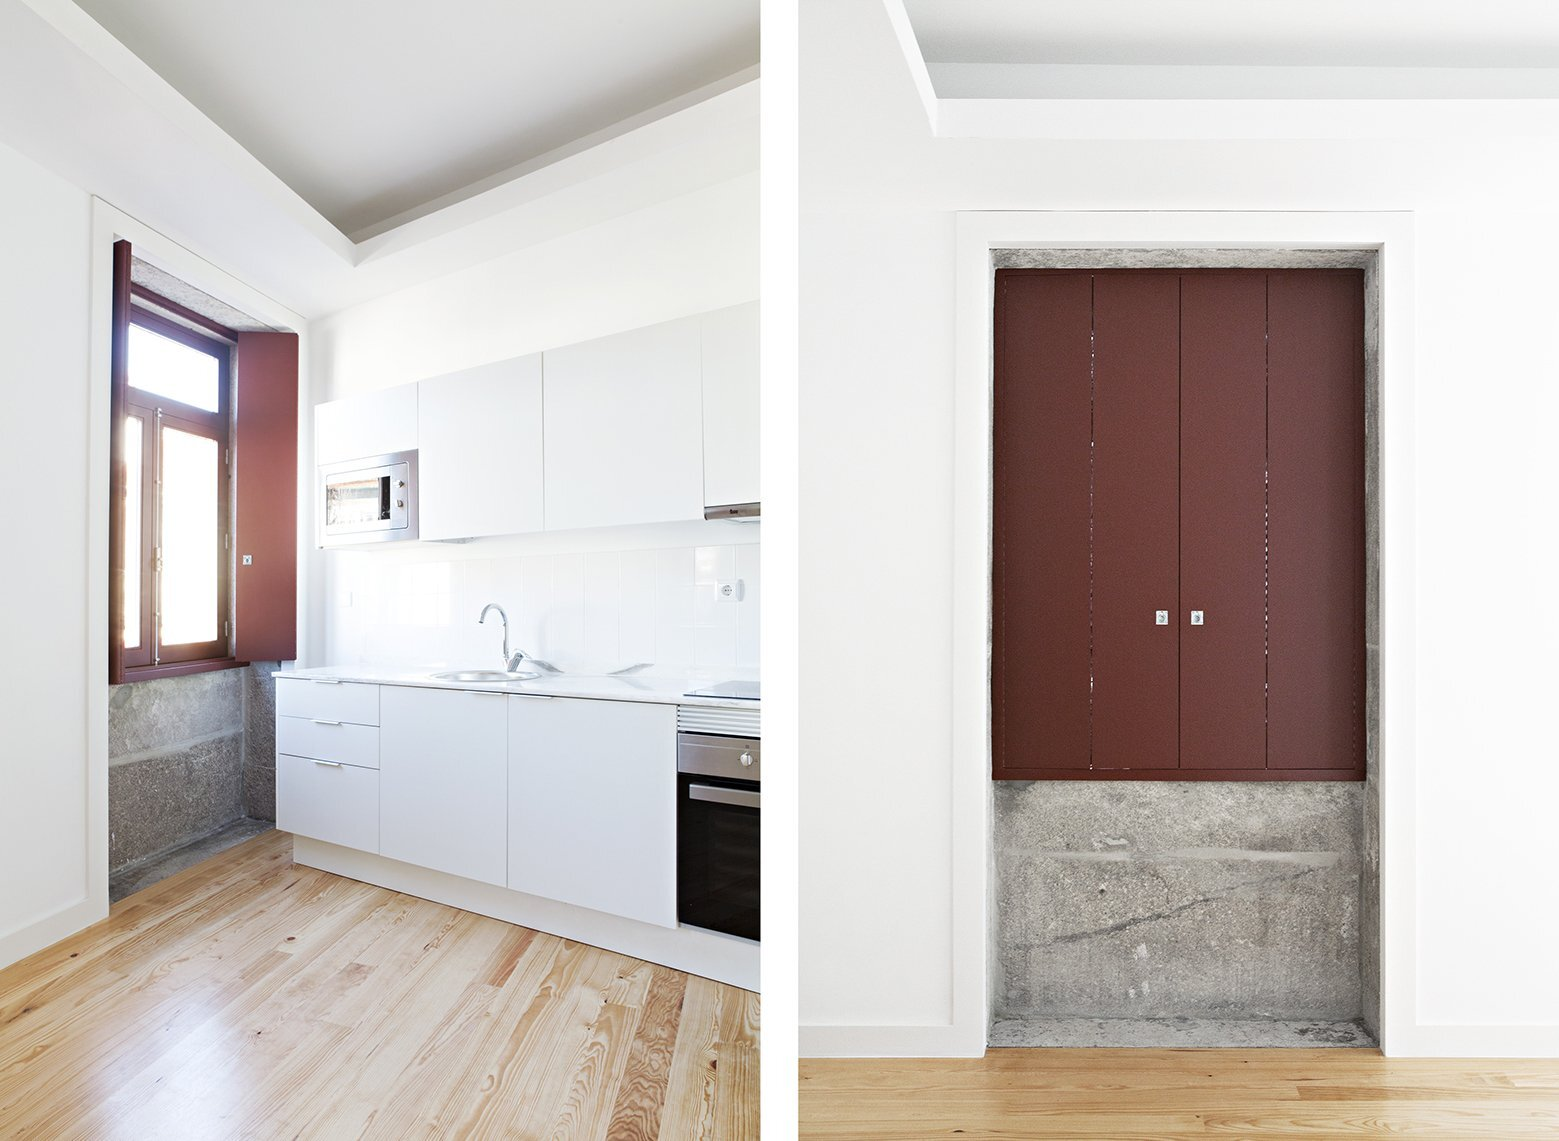 S. Victor Lofts - A2OFFICE - Portugal - Kitchen - Humble Homes